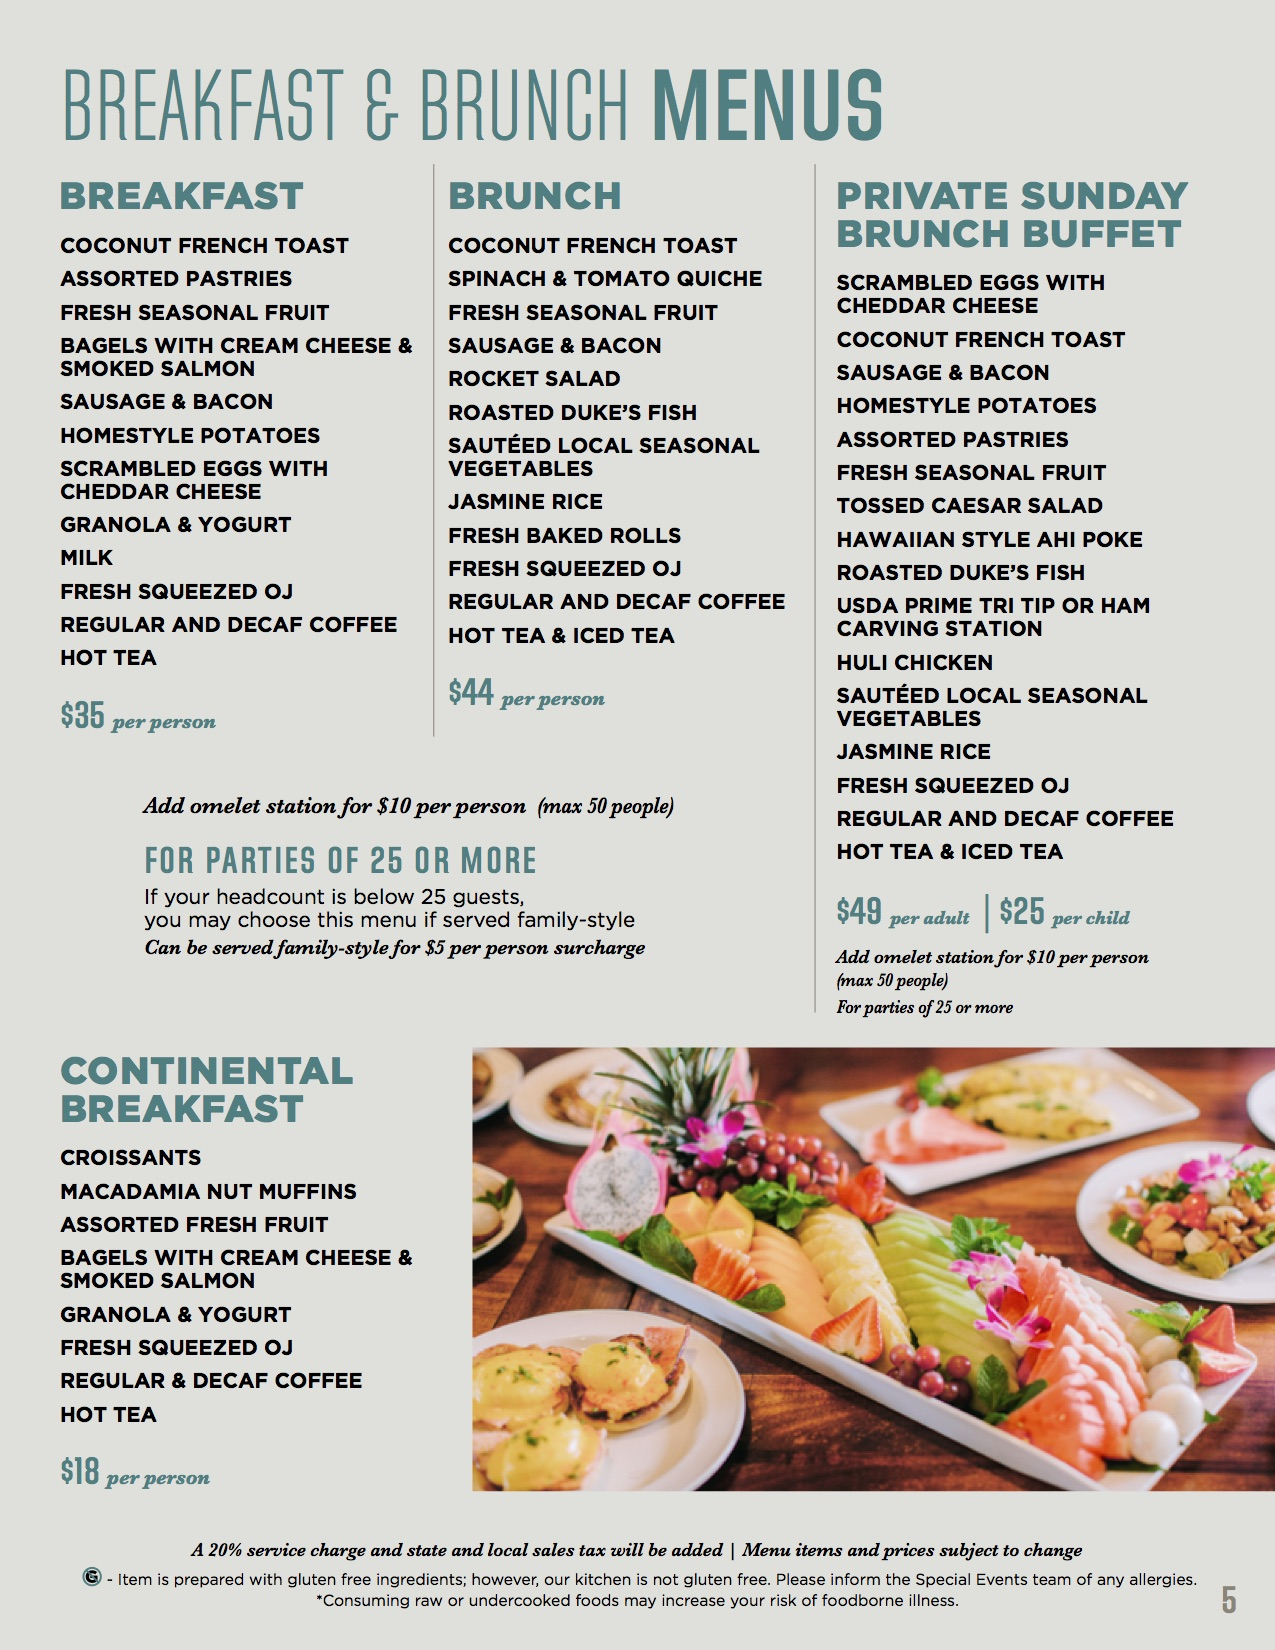 Banquet Breakfast & Brunch Menus